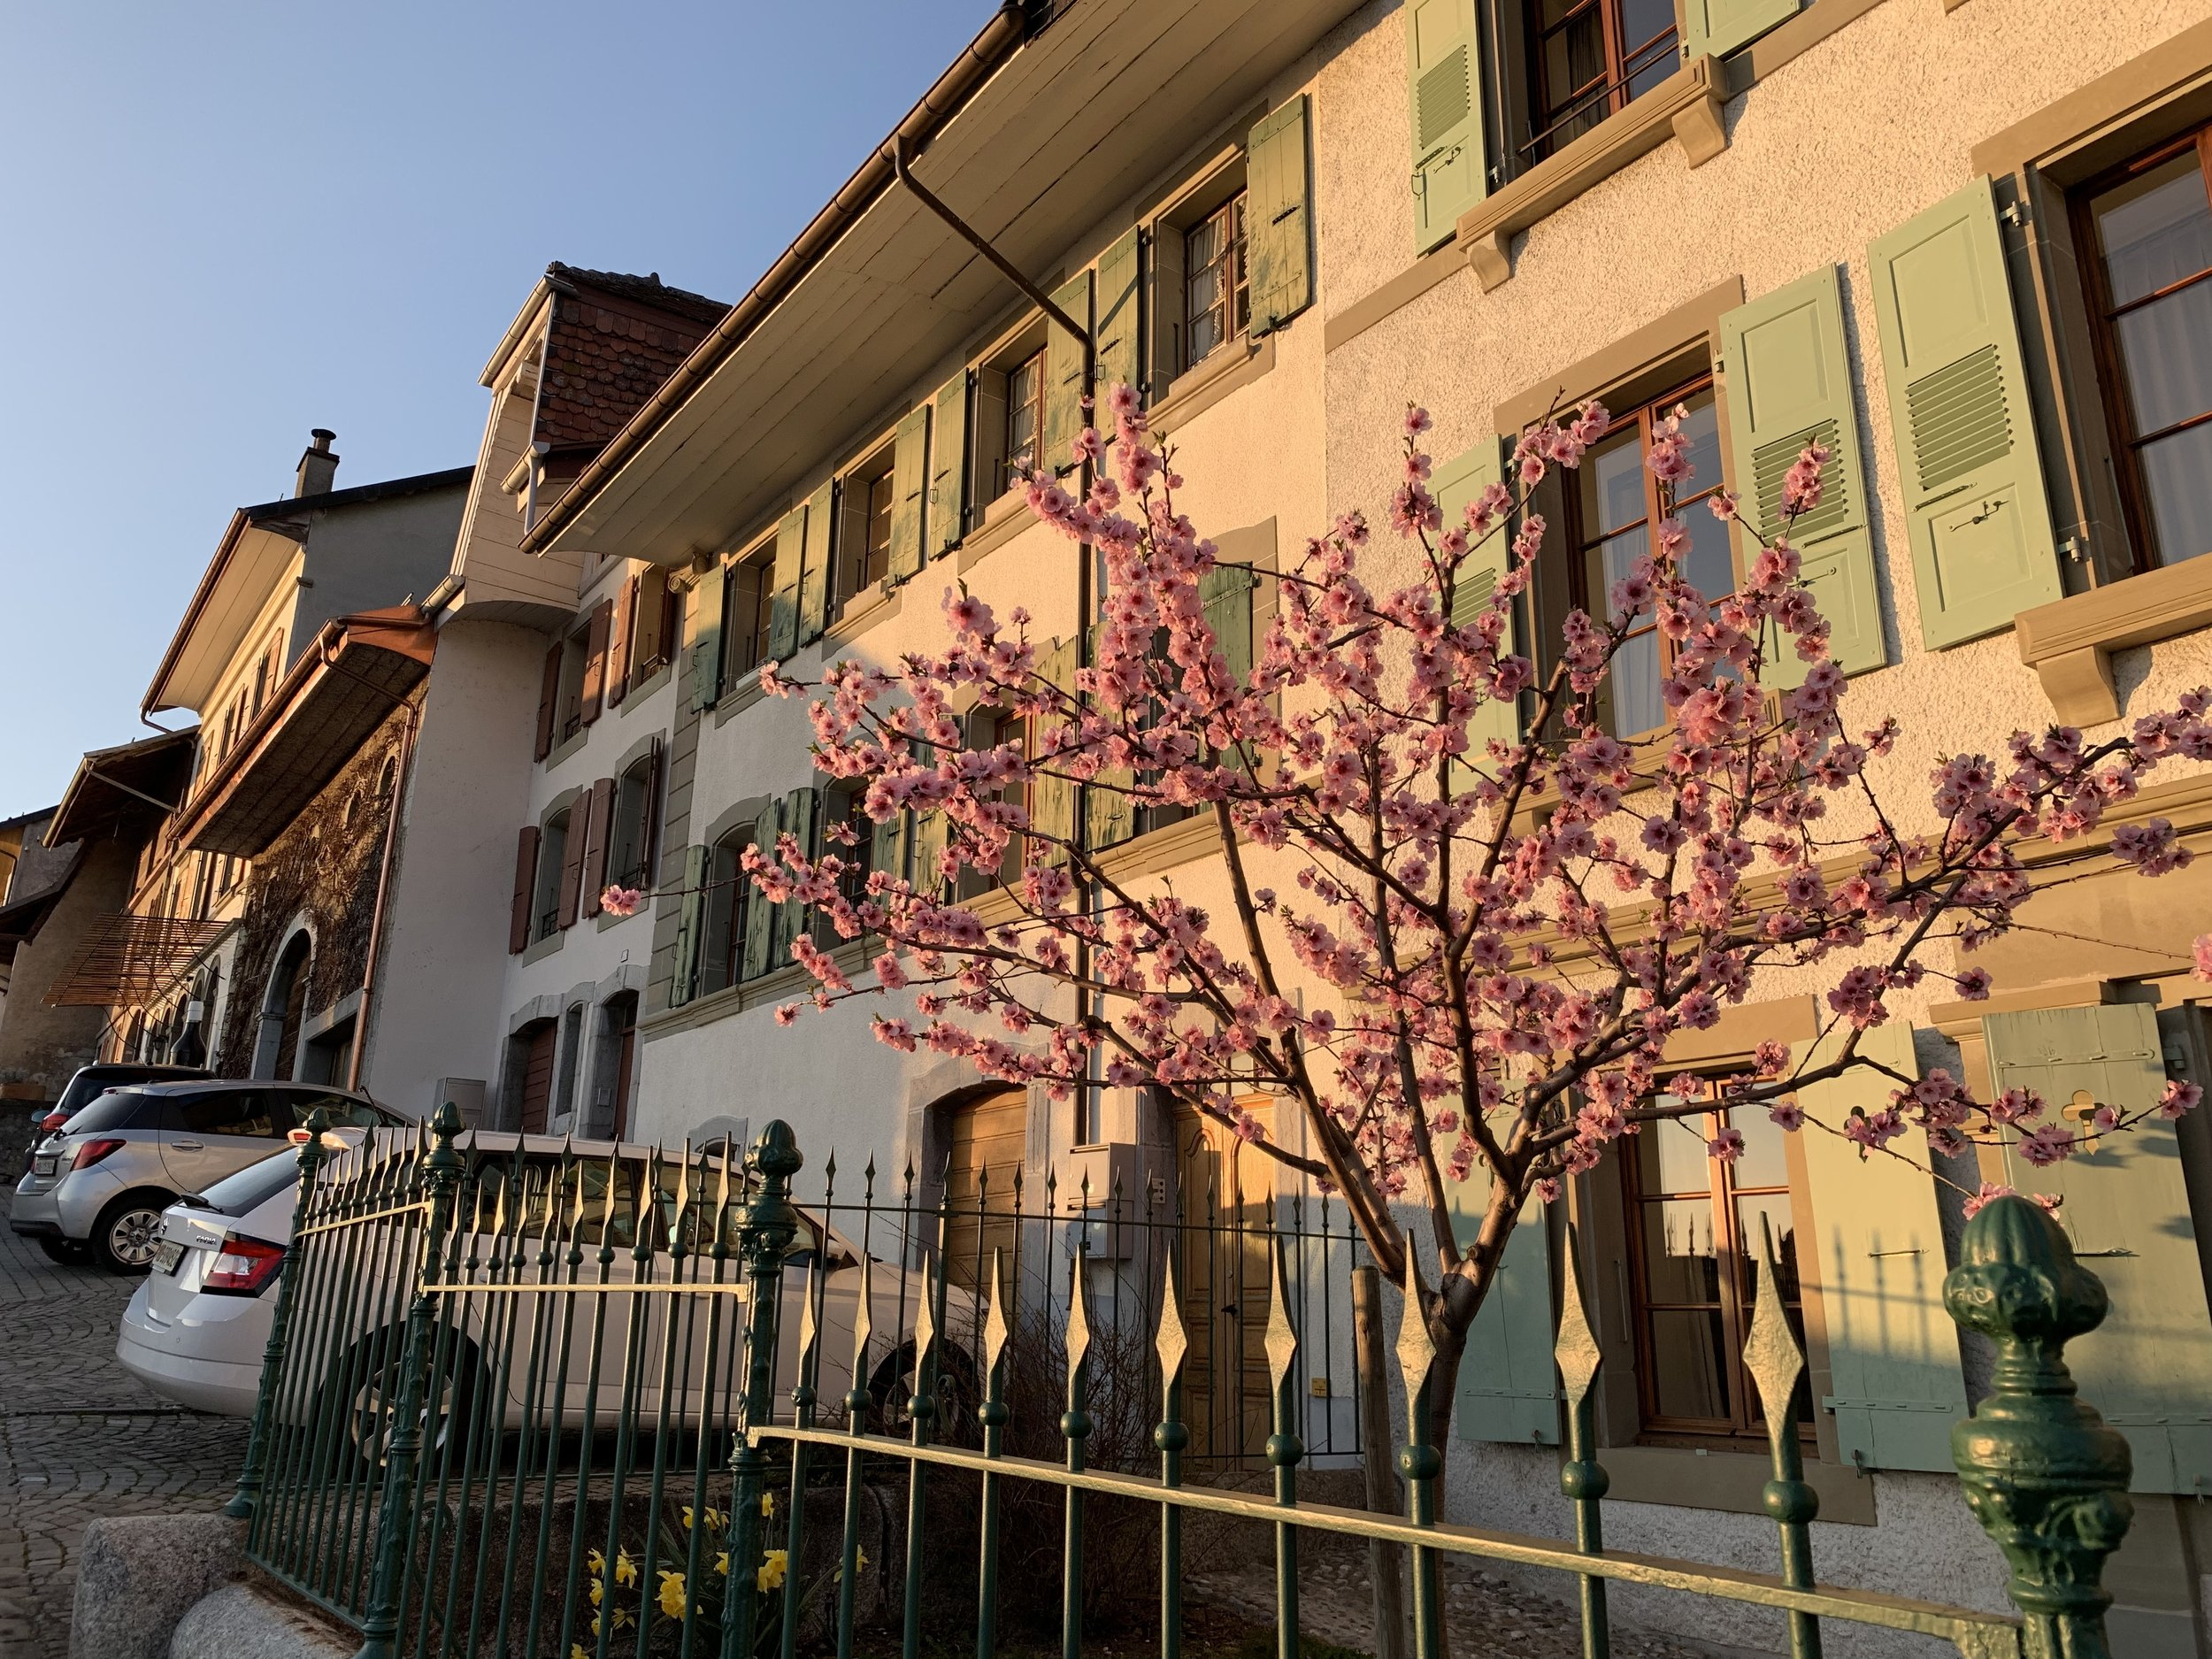 Along our walk to dinner, a house at sundown with a beautiful flowering tree. The Lavaux, Switzerland, March 2019.